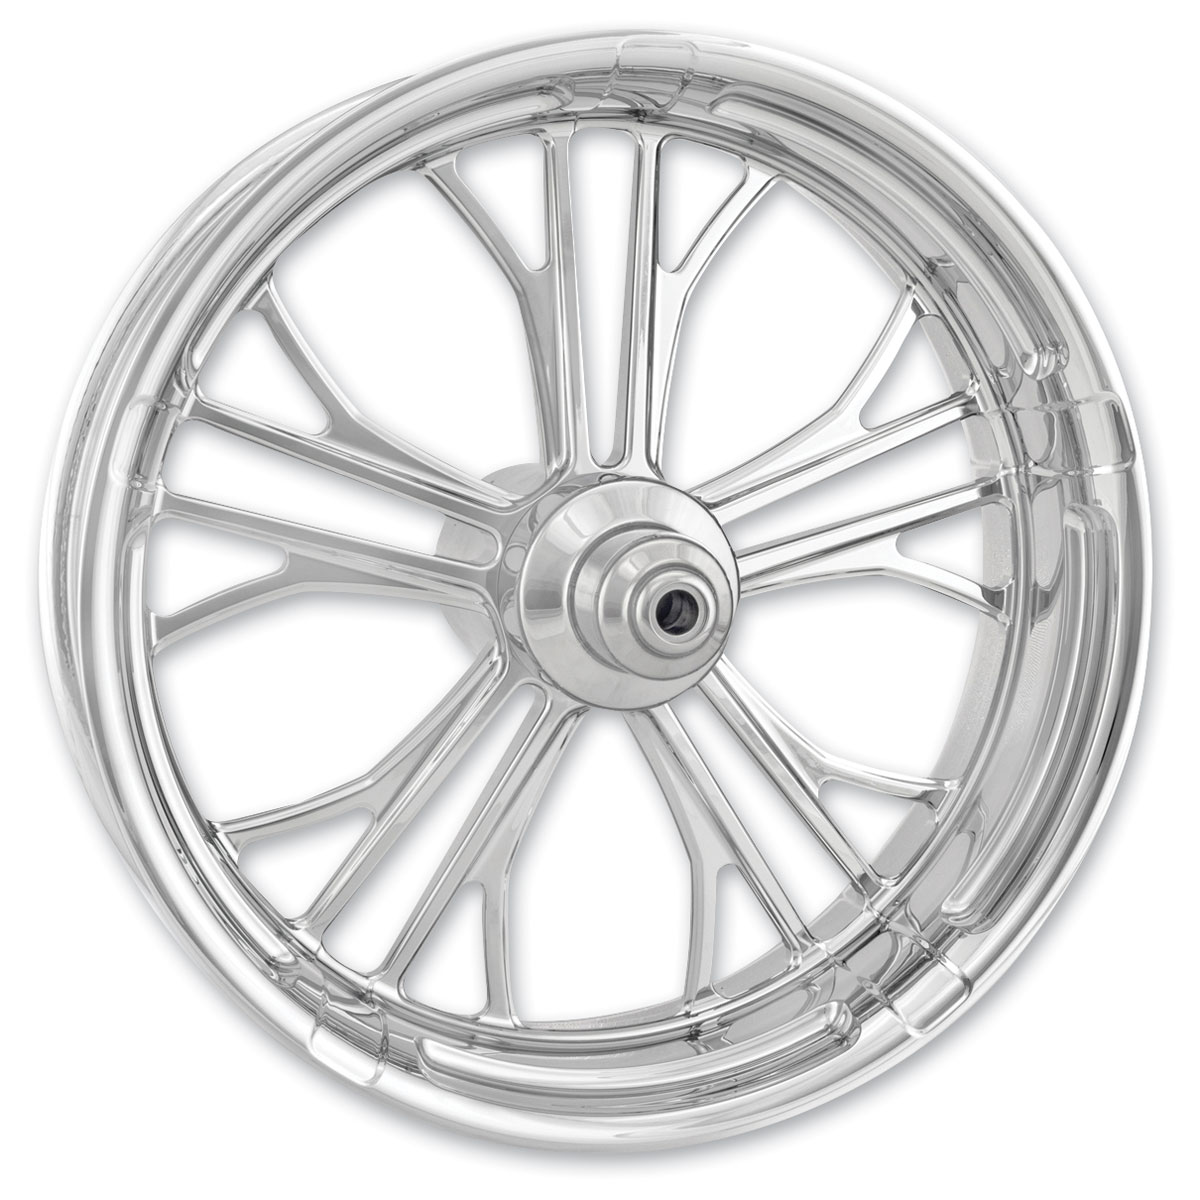 Performance Machine Dixon Chrome Rear Wheel 18x5.5